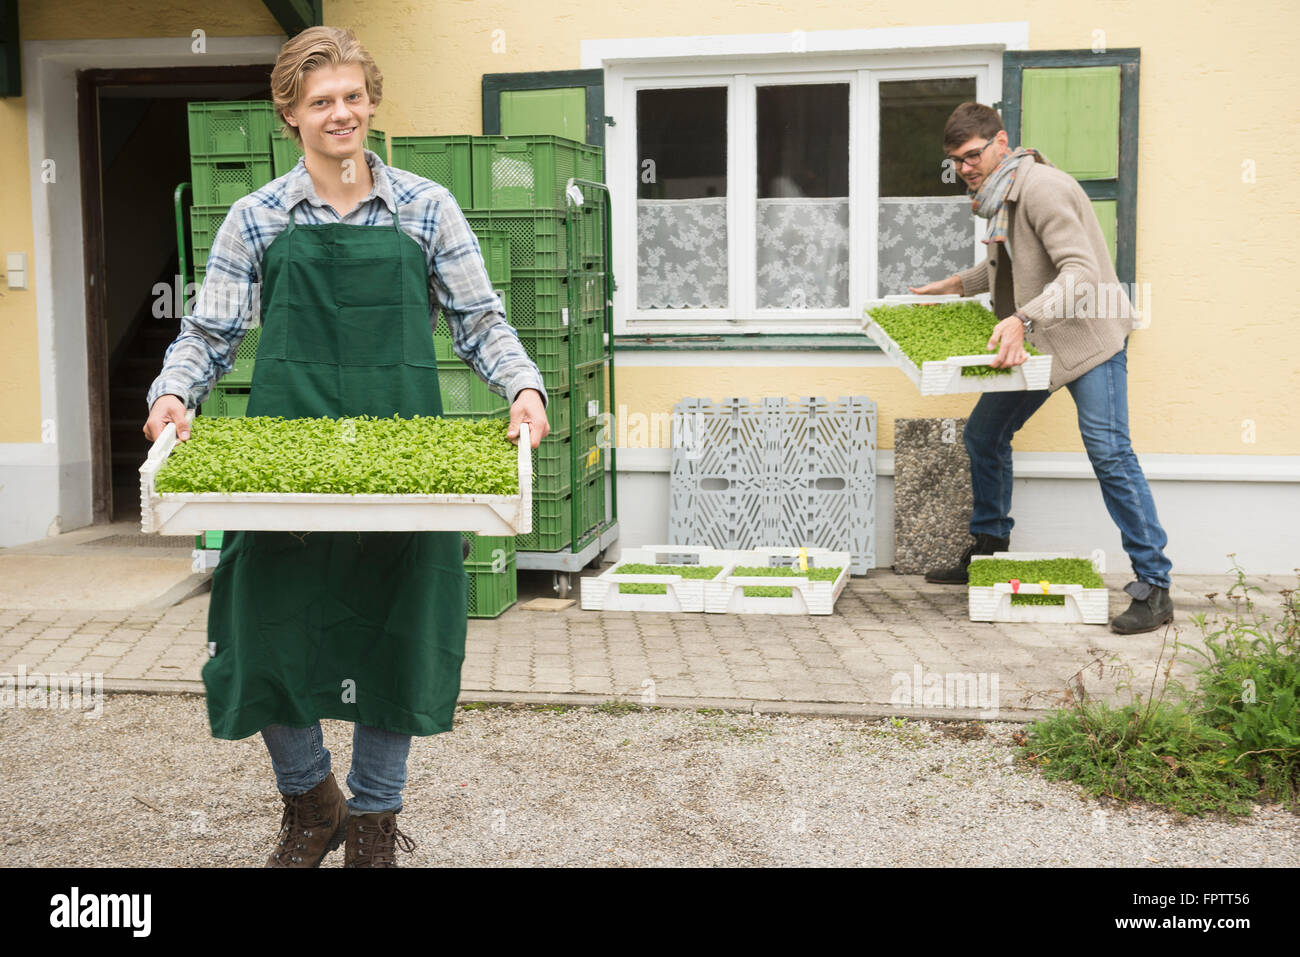 Organic farmers holding a plant crate for salad in farm, Bavaria, Germany - Stock Image